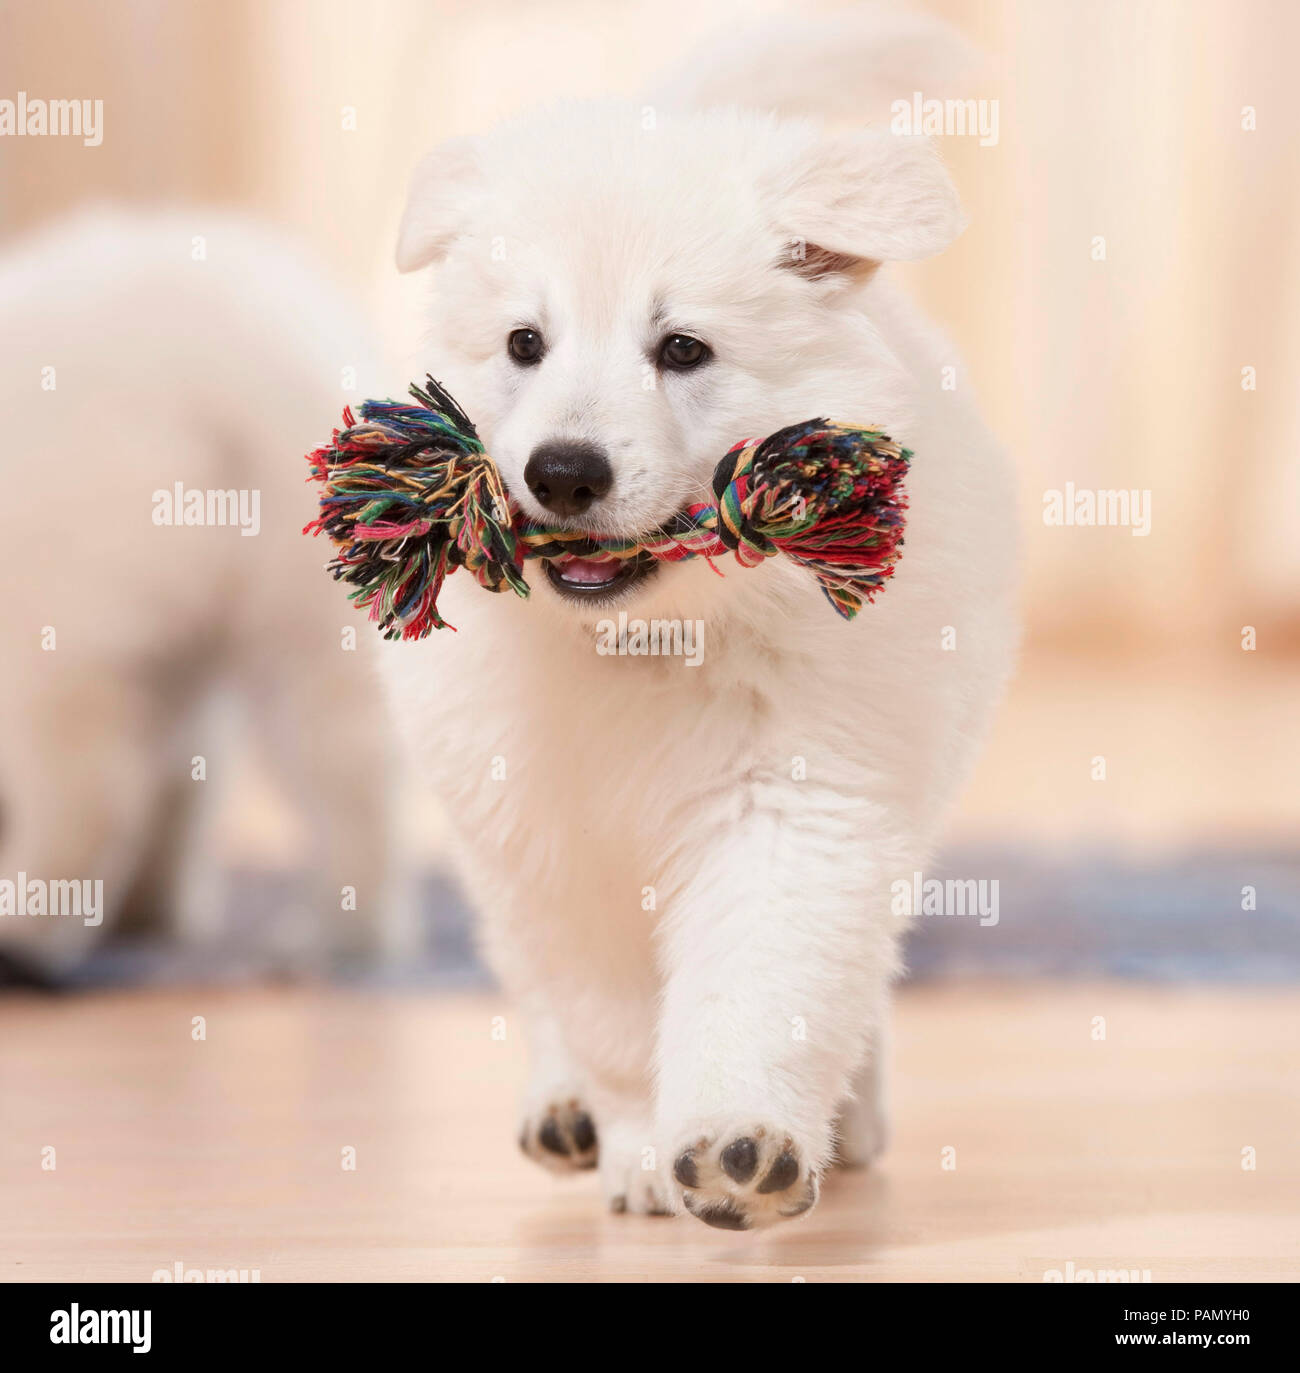 White Swiss Shepherd Dog. A puppy carries a colorful toy rope through an apartment. Germany - Stock Image